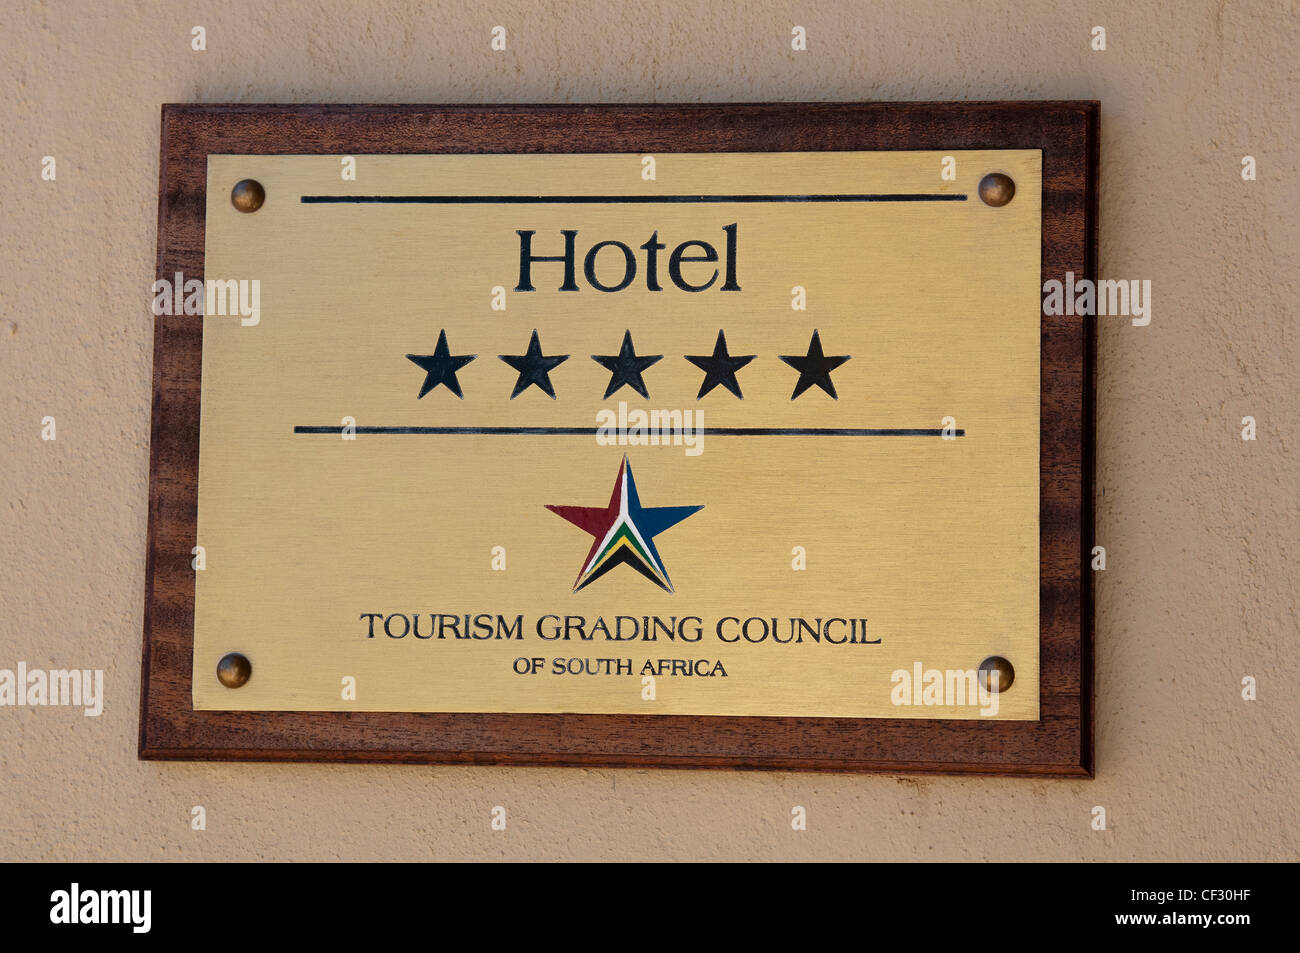 5 Star hotel sign of the South African Grading Council - Stock Image